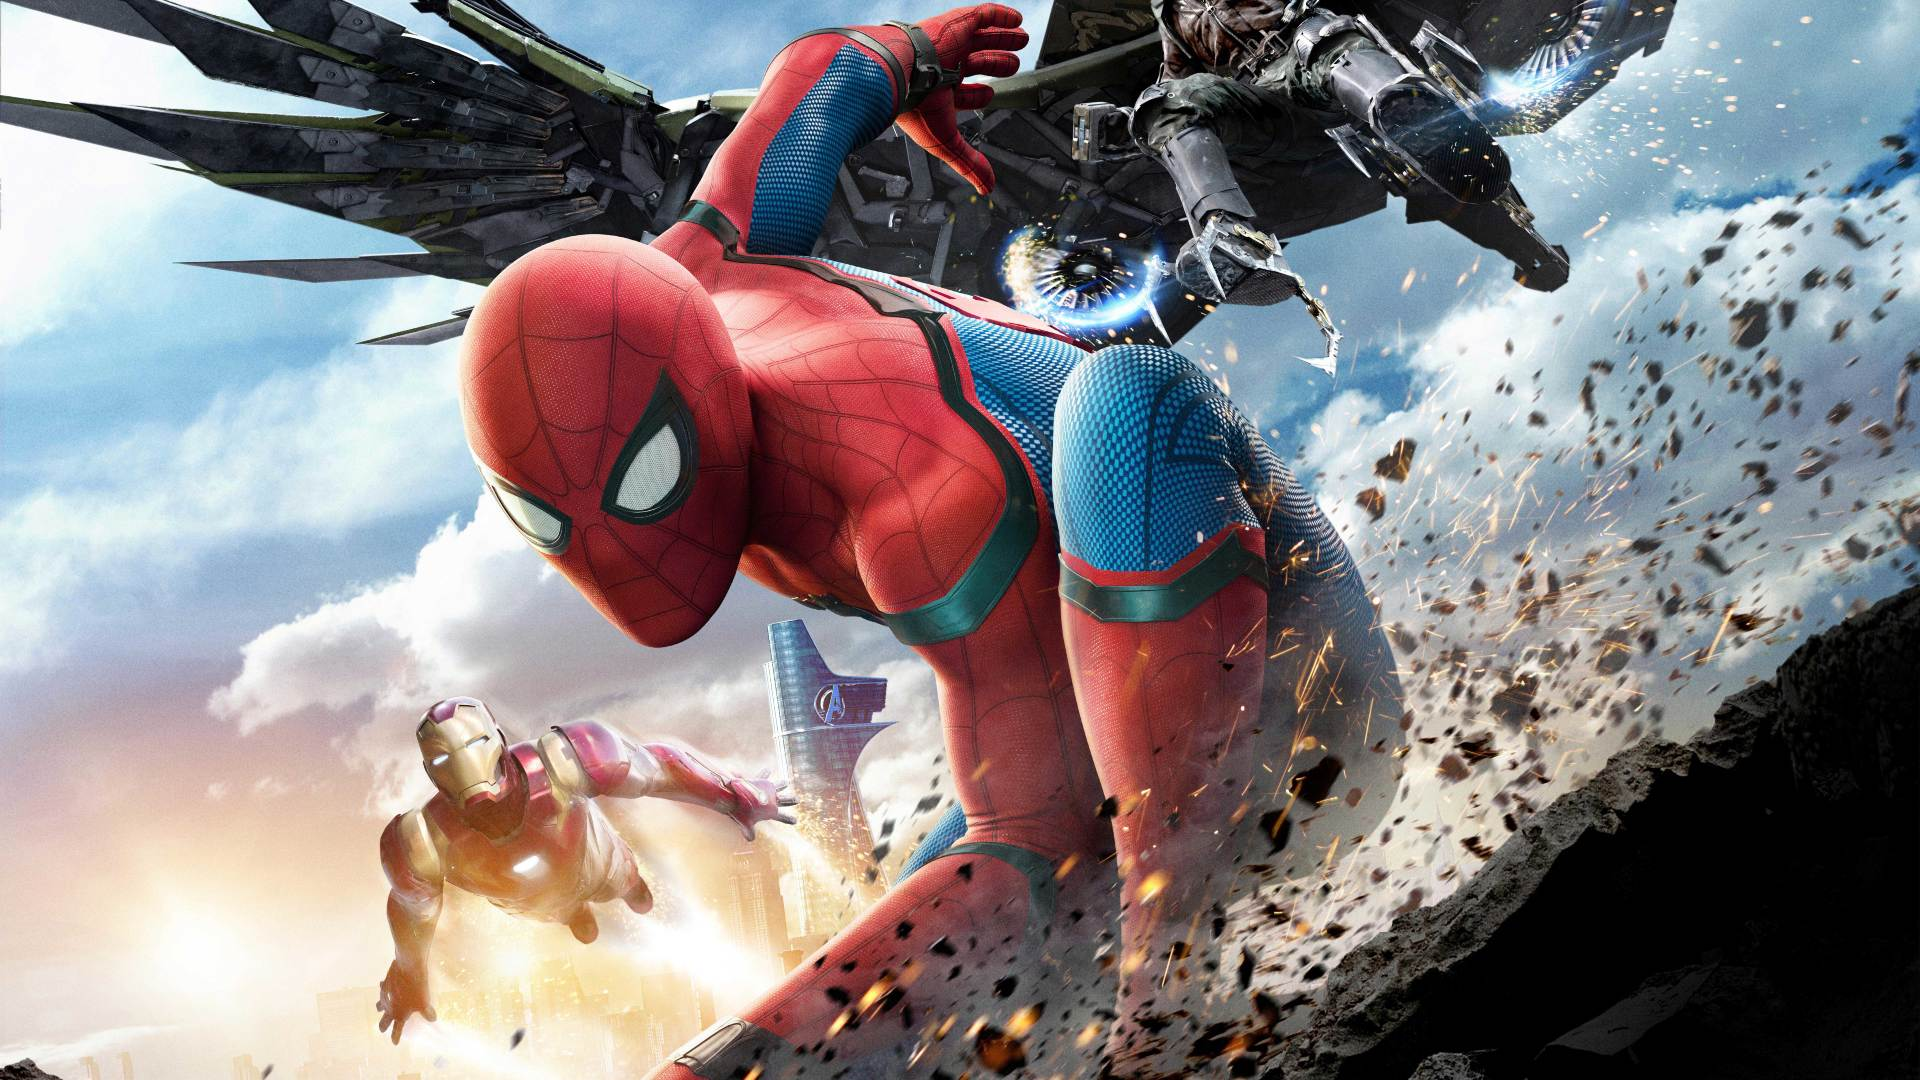 1920x1080 Spiderman Homecoming Climax 1080p Laptop Full Hd